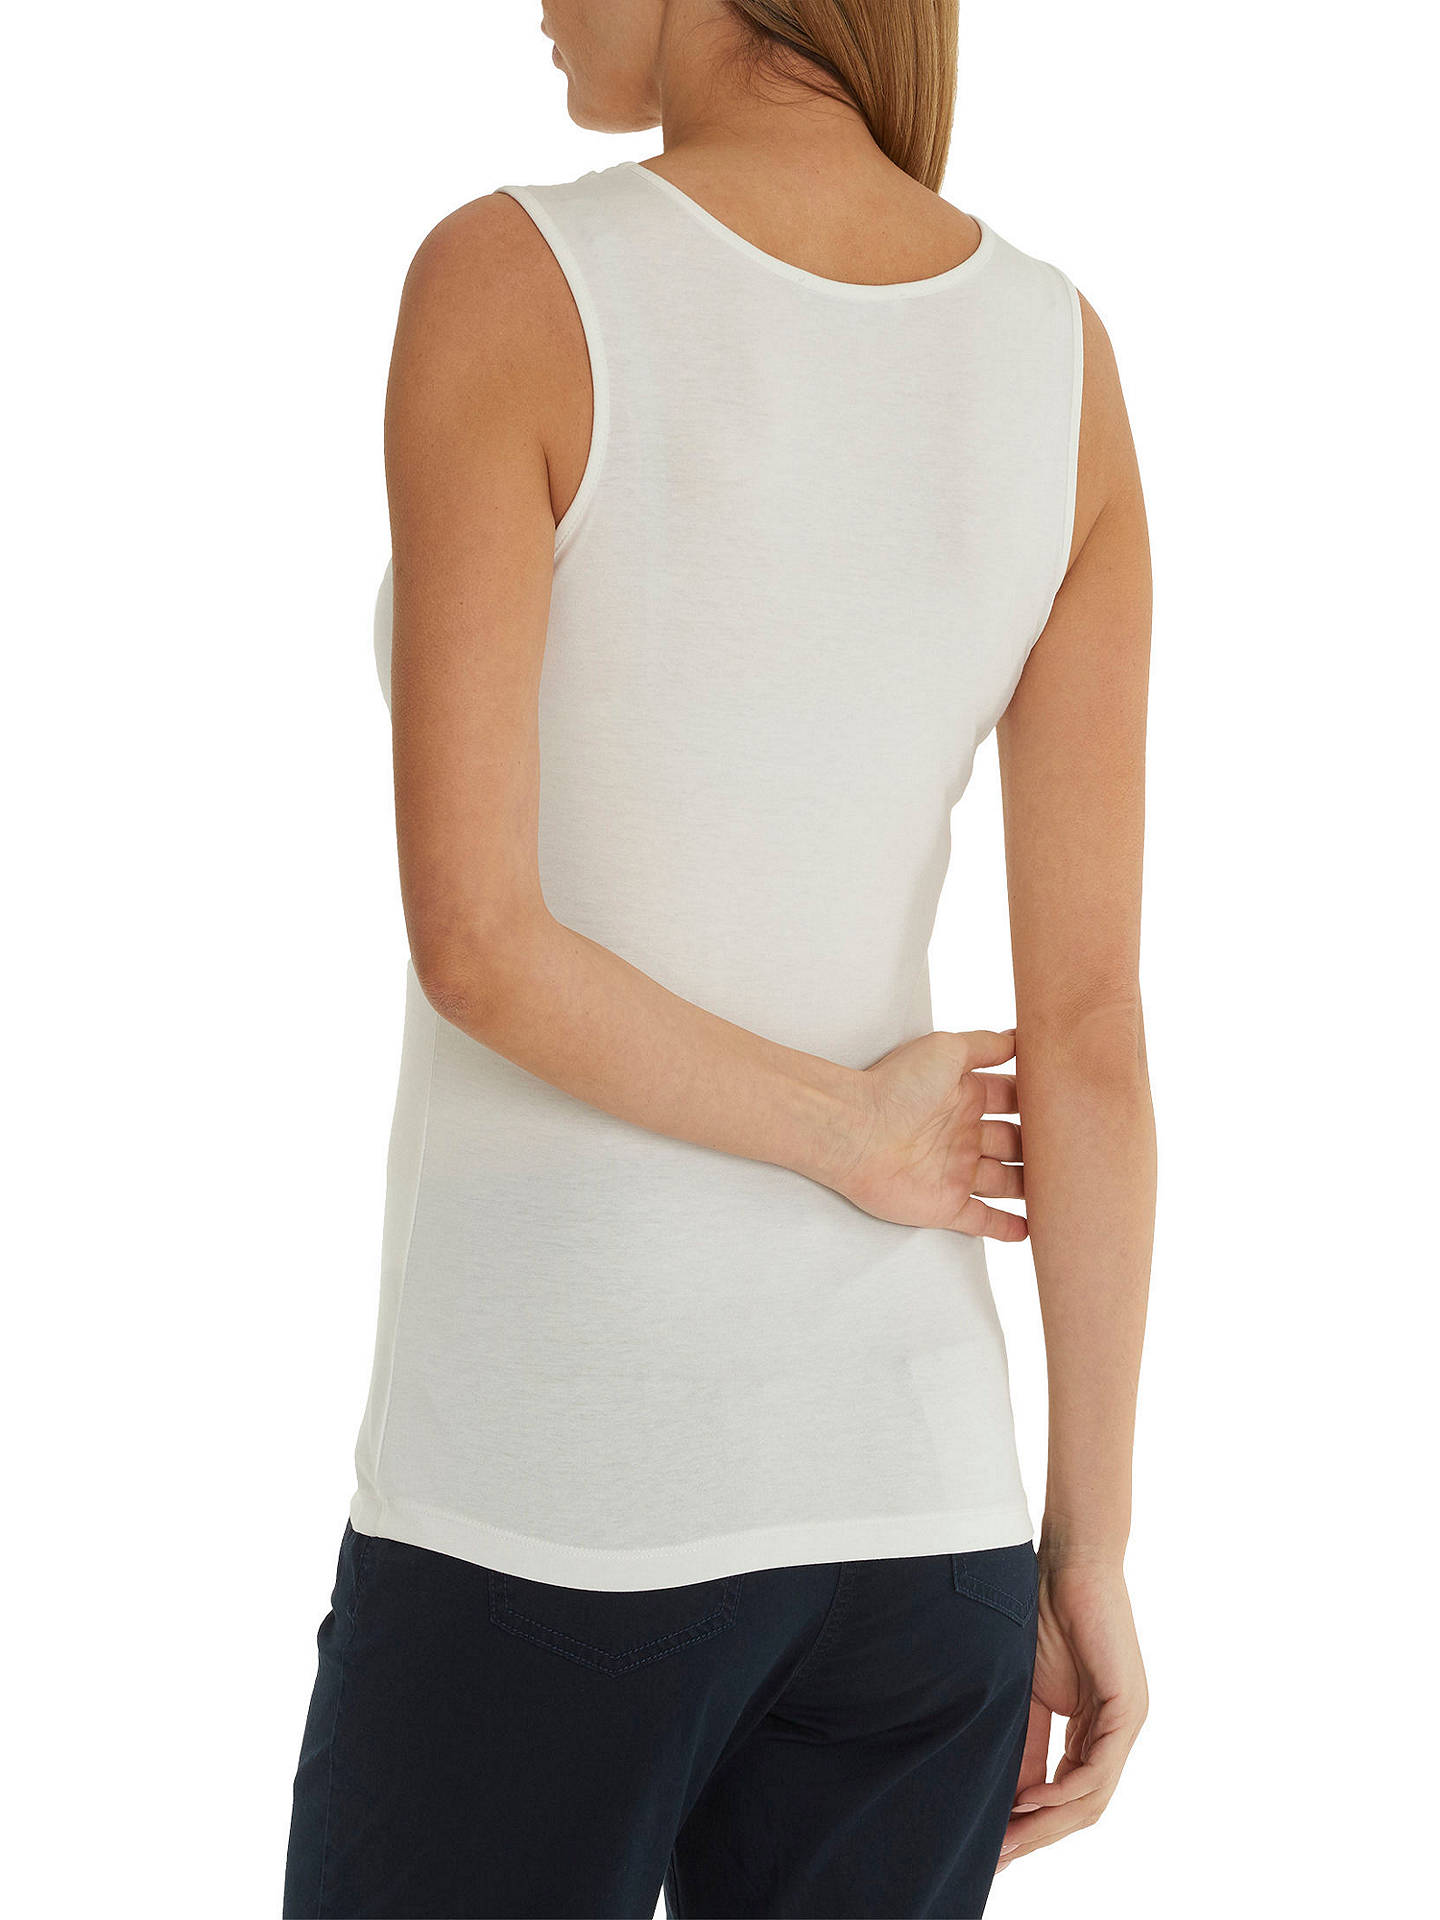 BuyBetty Barclay Vest Top, Off White, 10 Online at johnlewis.com